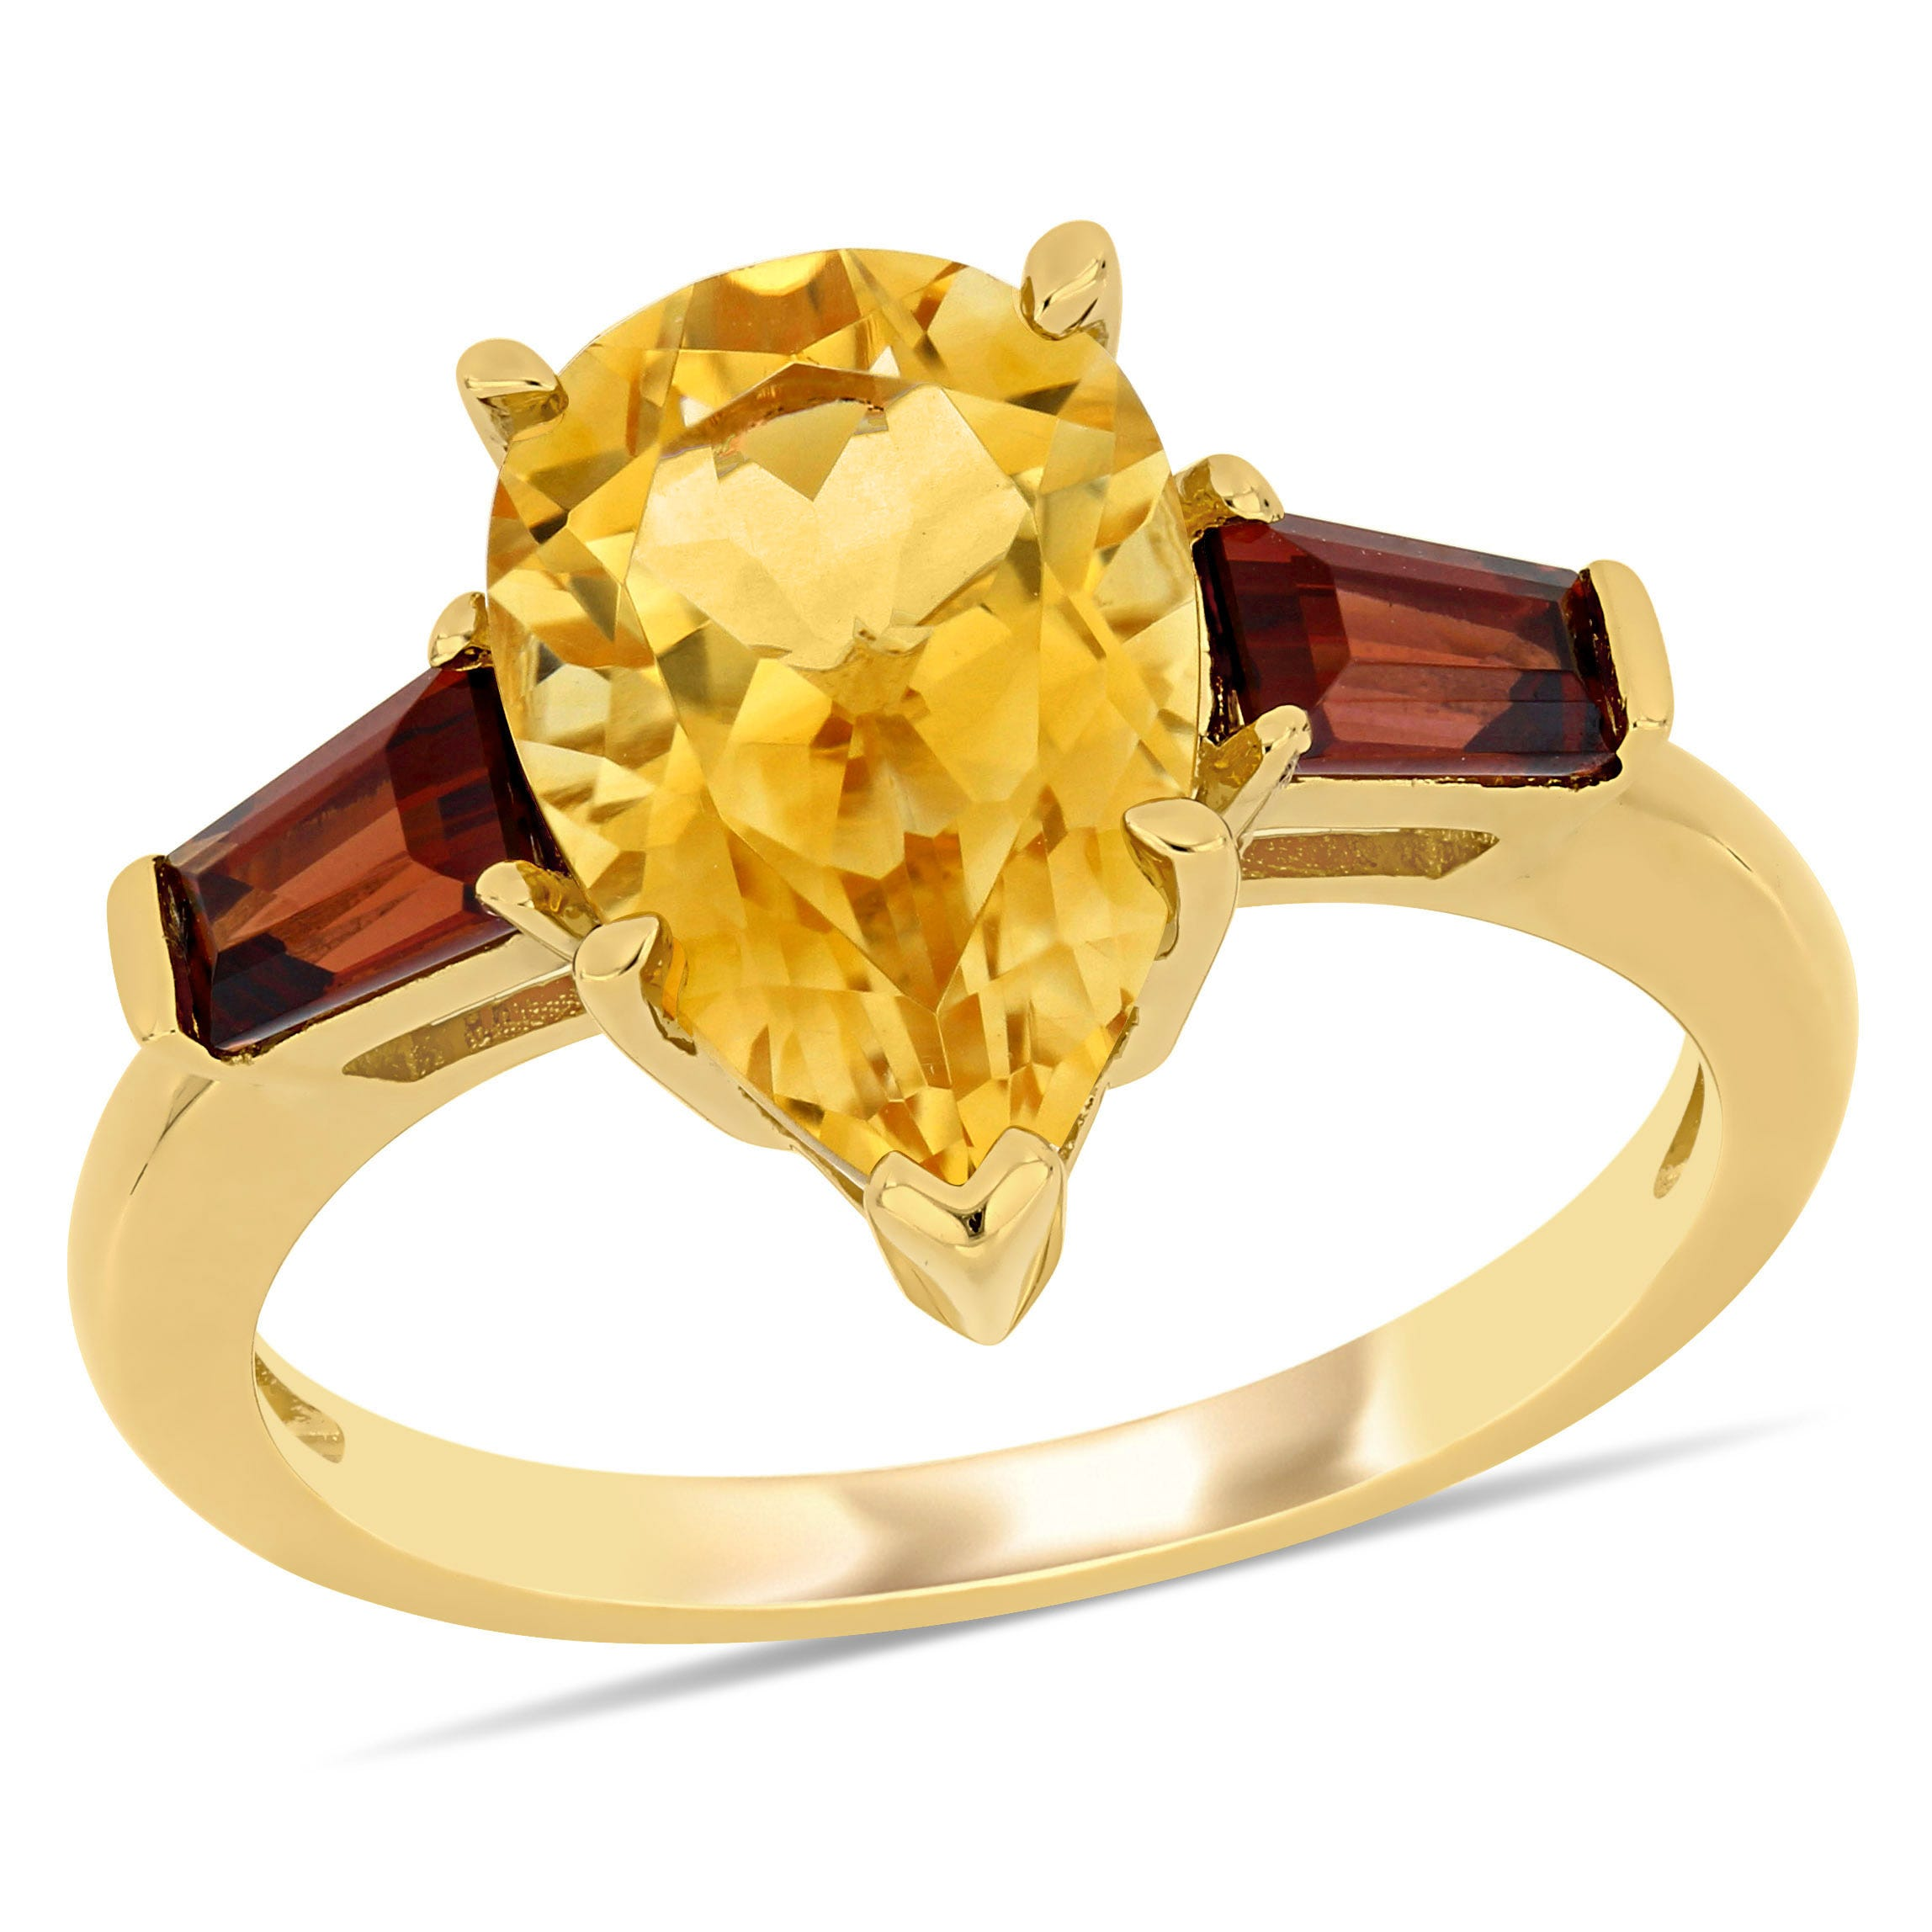 Citrine and Garnet Pear Shaped Ring in 14k Yellow Gold